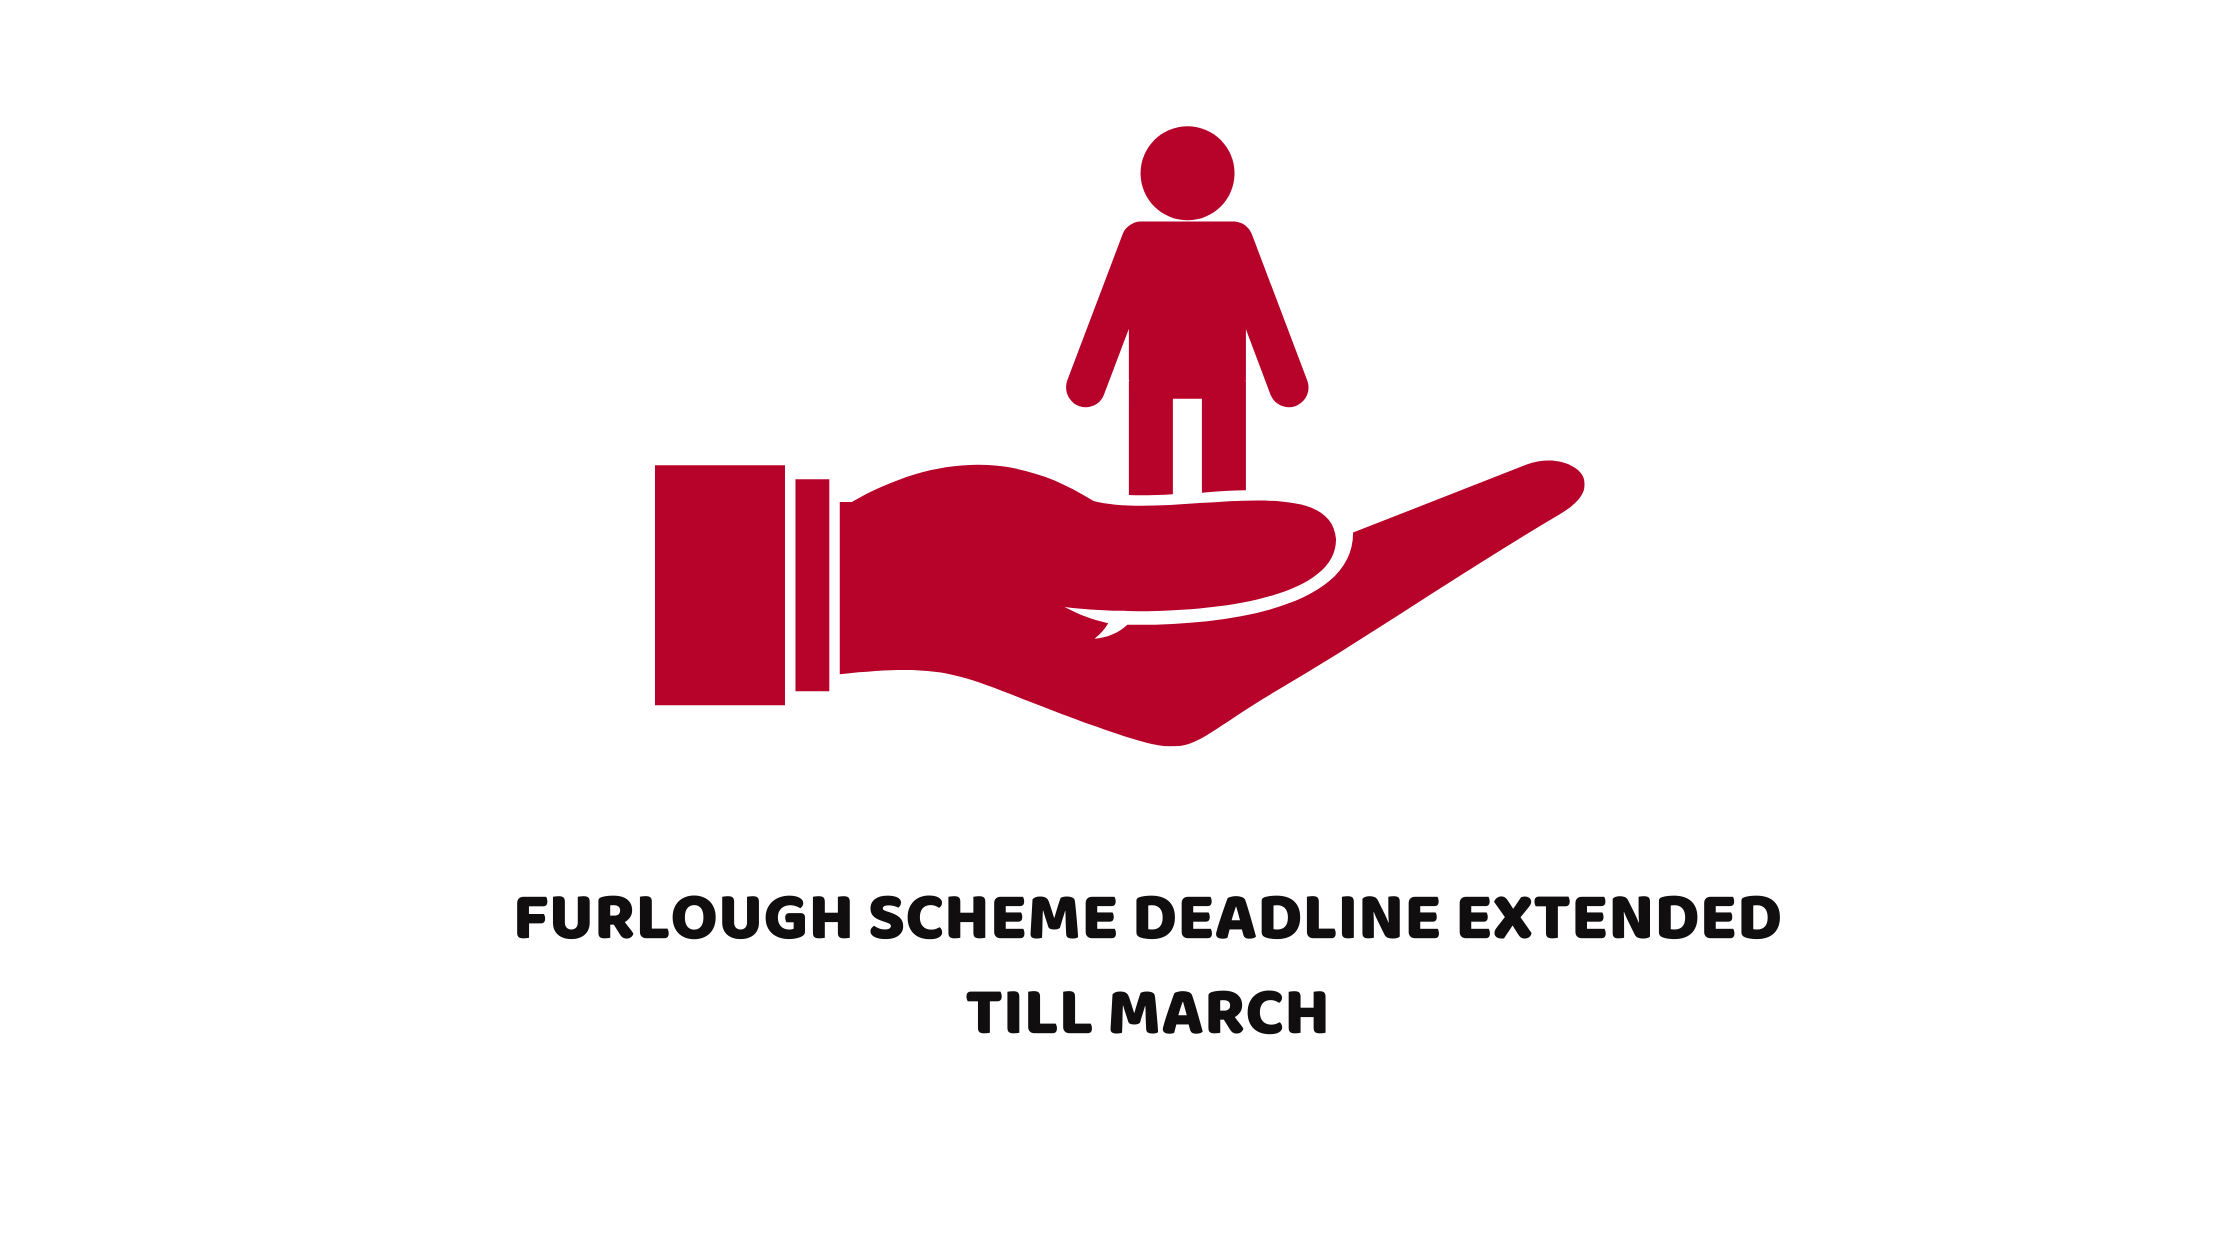 Furlough Scheme Extended till March